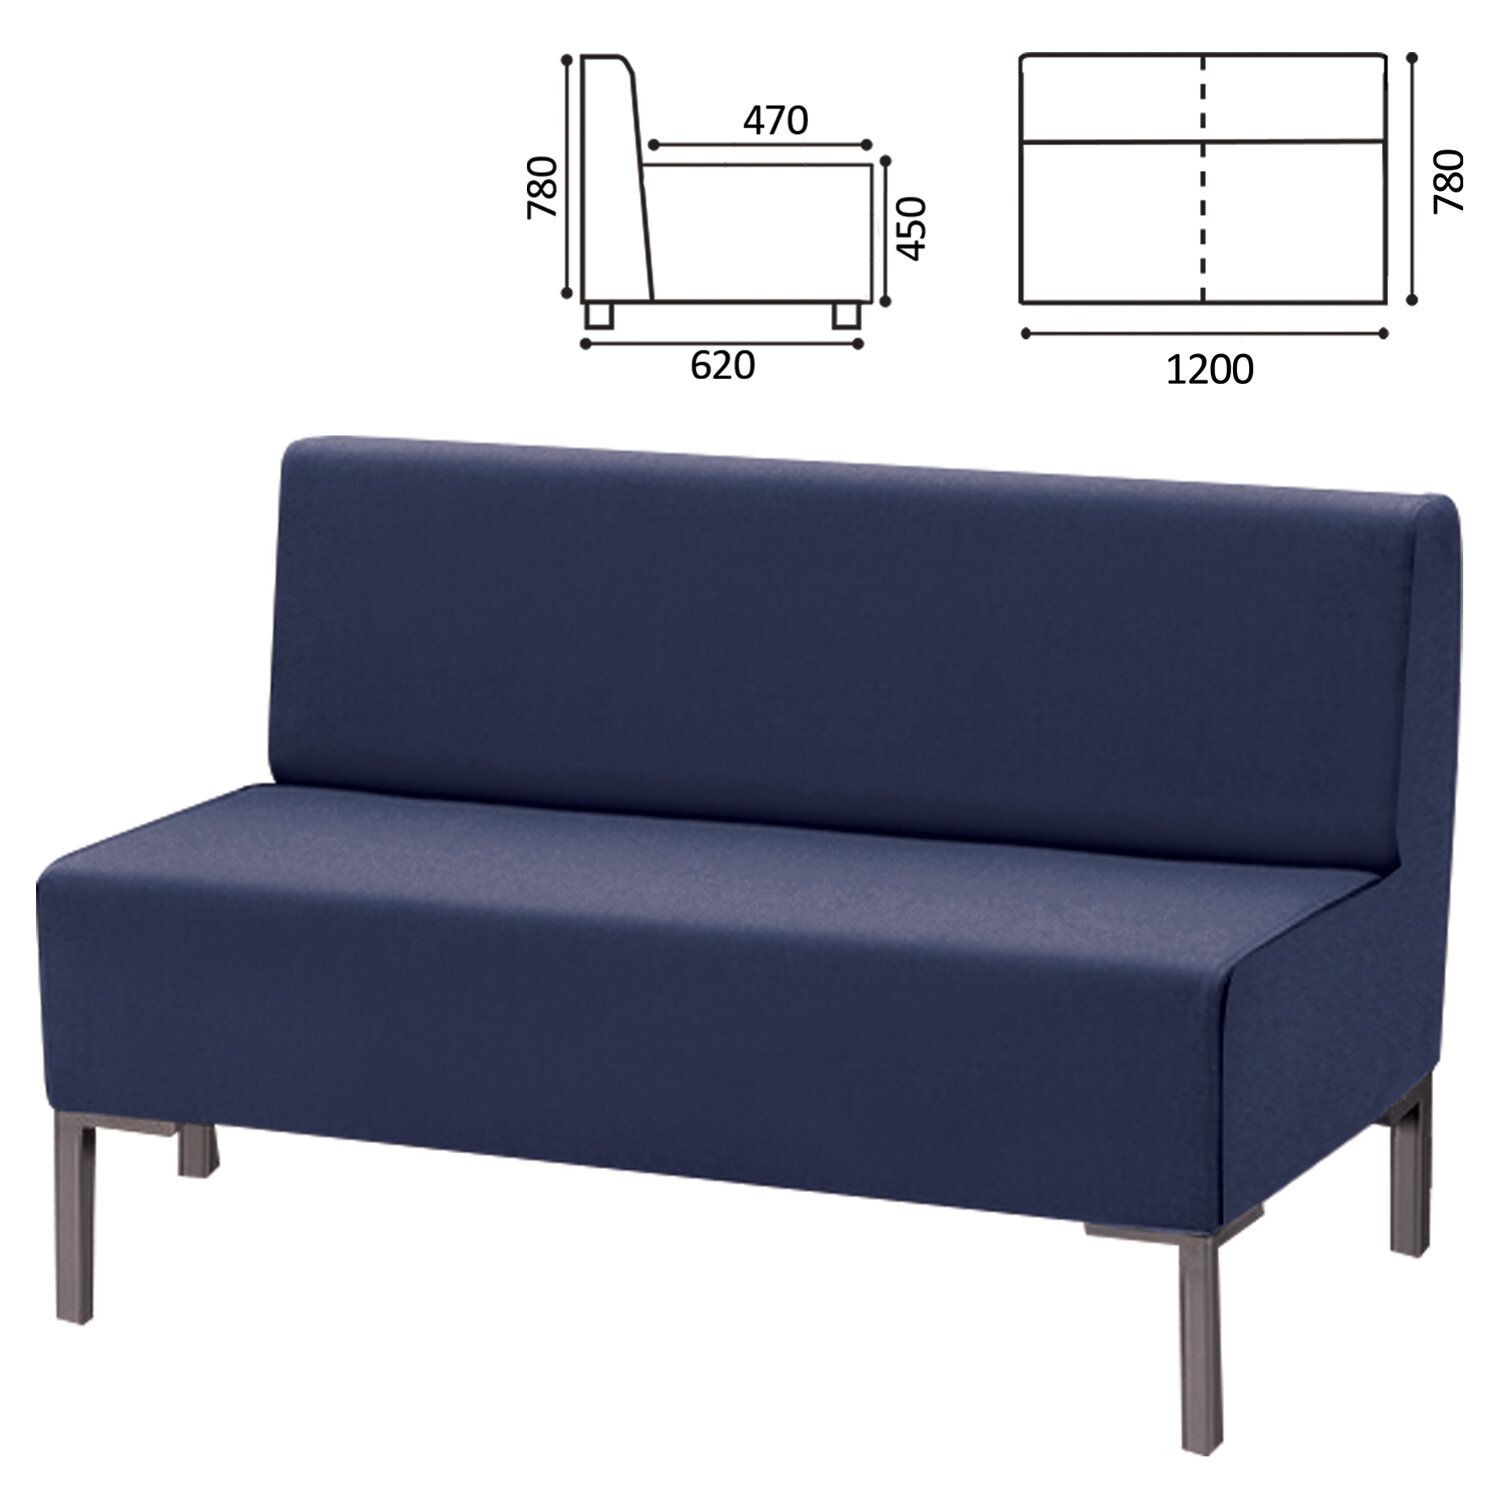 """GARTLEX / Sofa soft double """"Host"""" M-43, 1200x620x780 mm, without armrests, eco-leather, dark blue"""